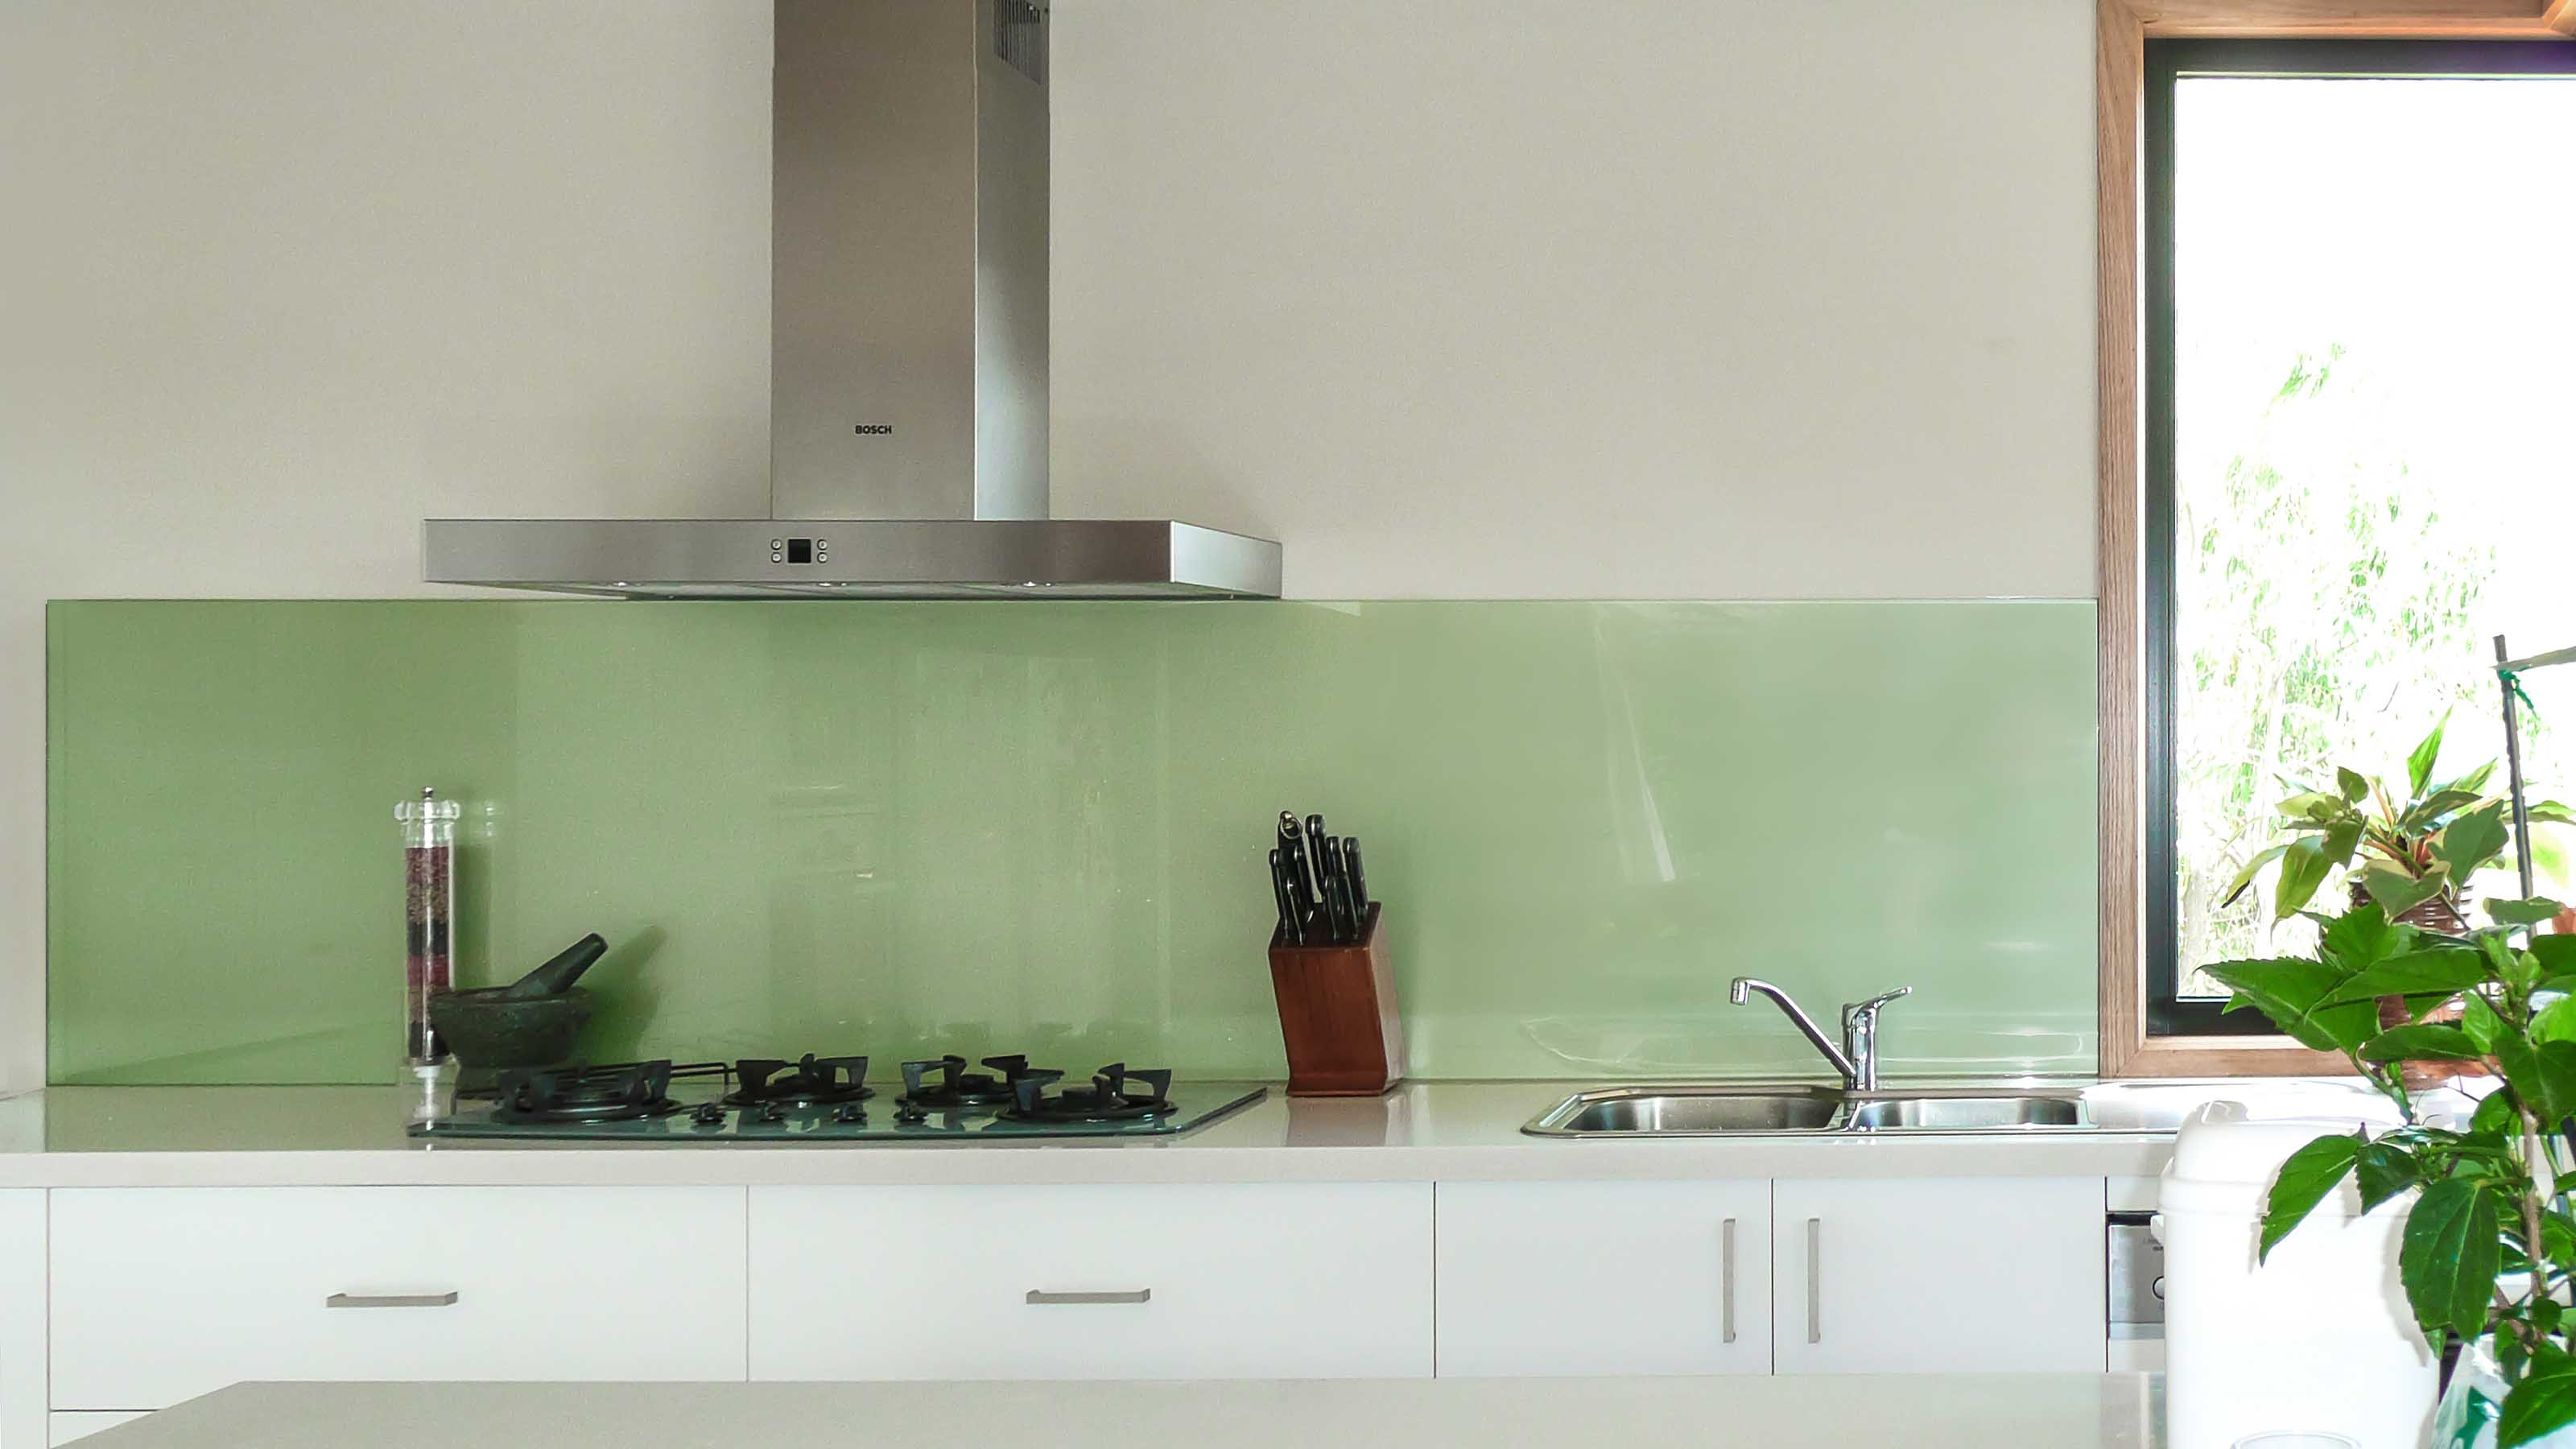 Glass splashbacks for bathroom sinks - Kolor Green Metallic Kitchen Glass Splashbacks Stone Benchtop Lorne Supplied